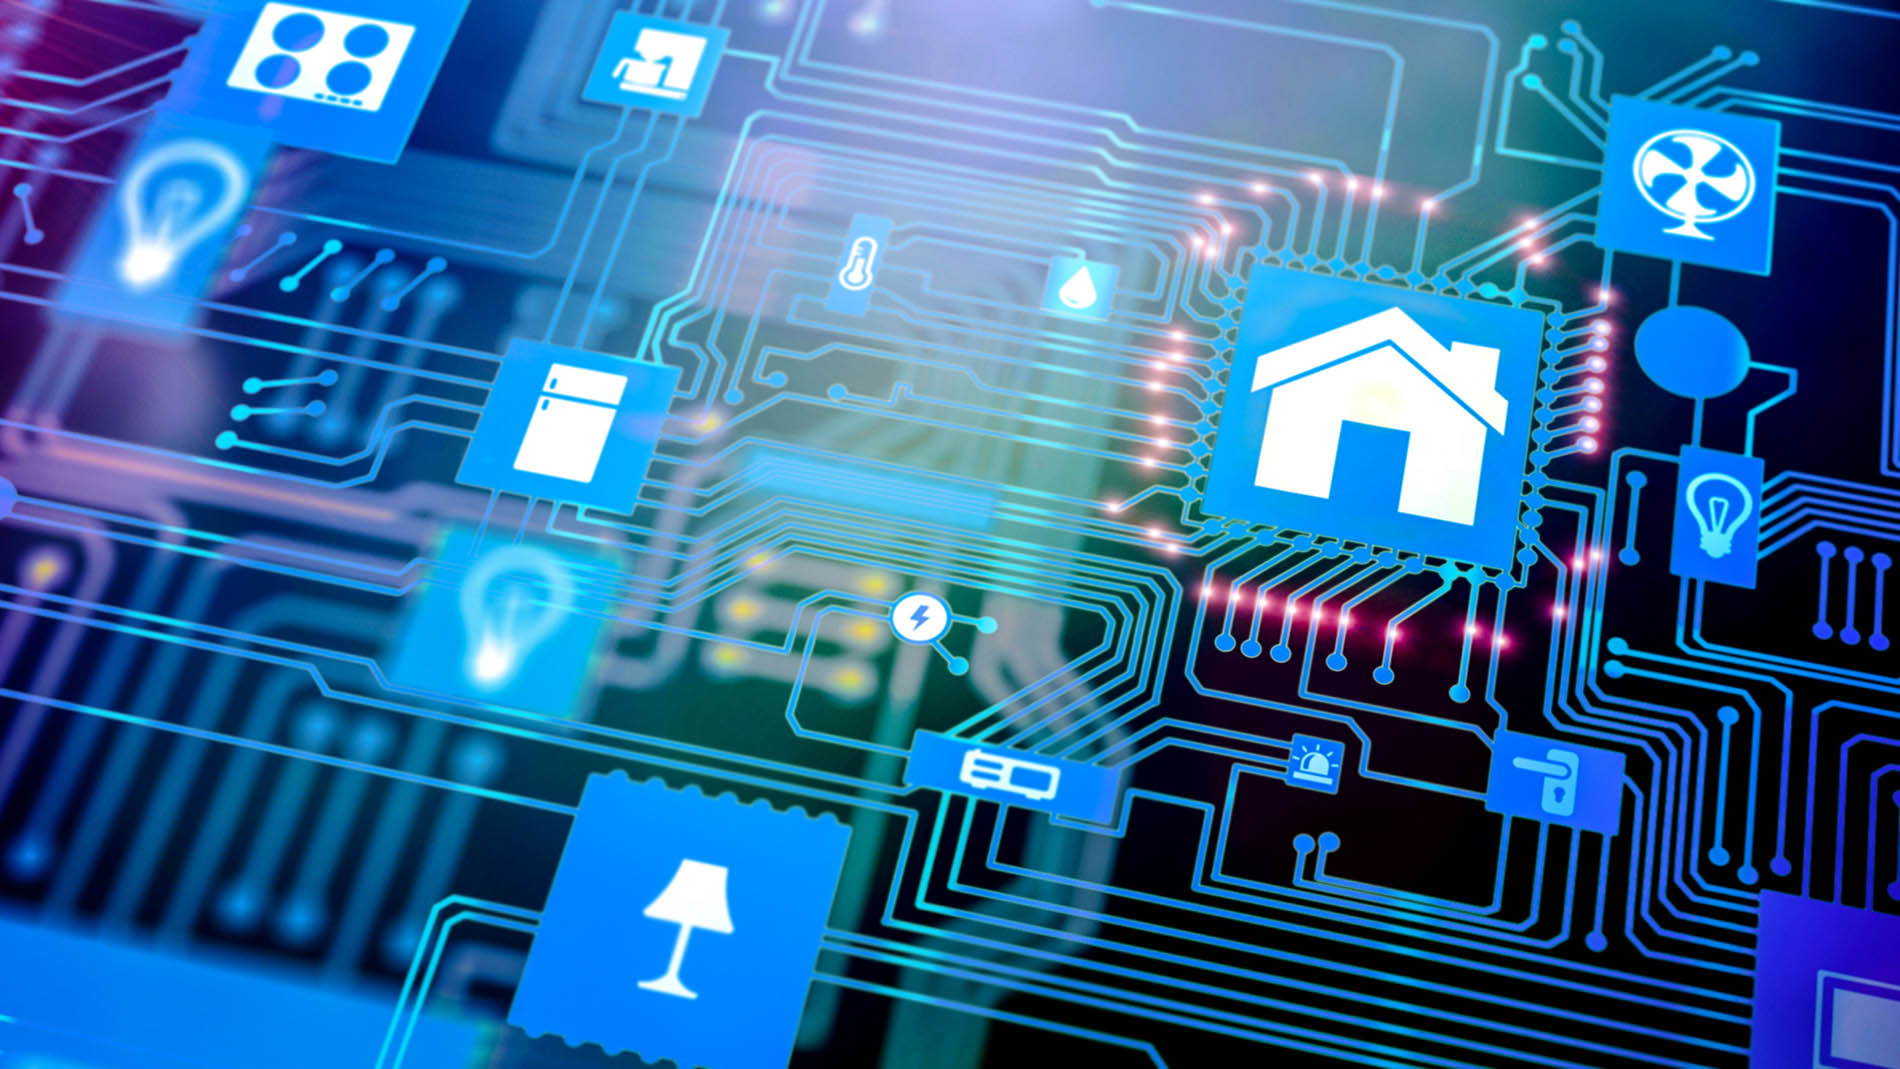 With the growing security threats, should I have a smart home?